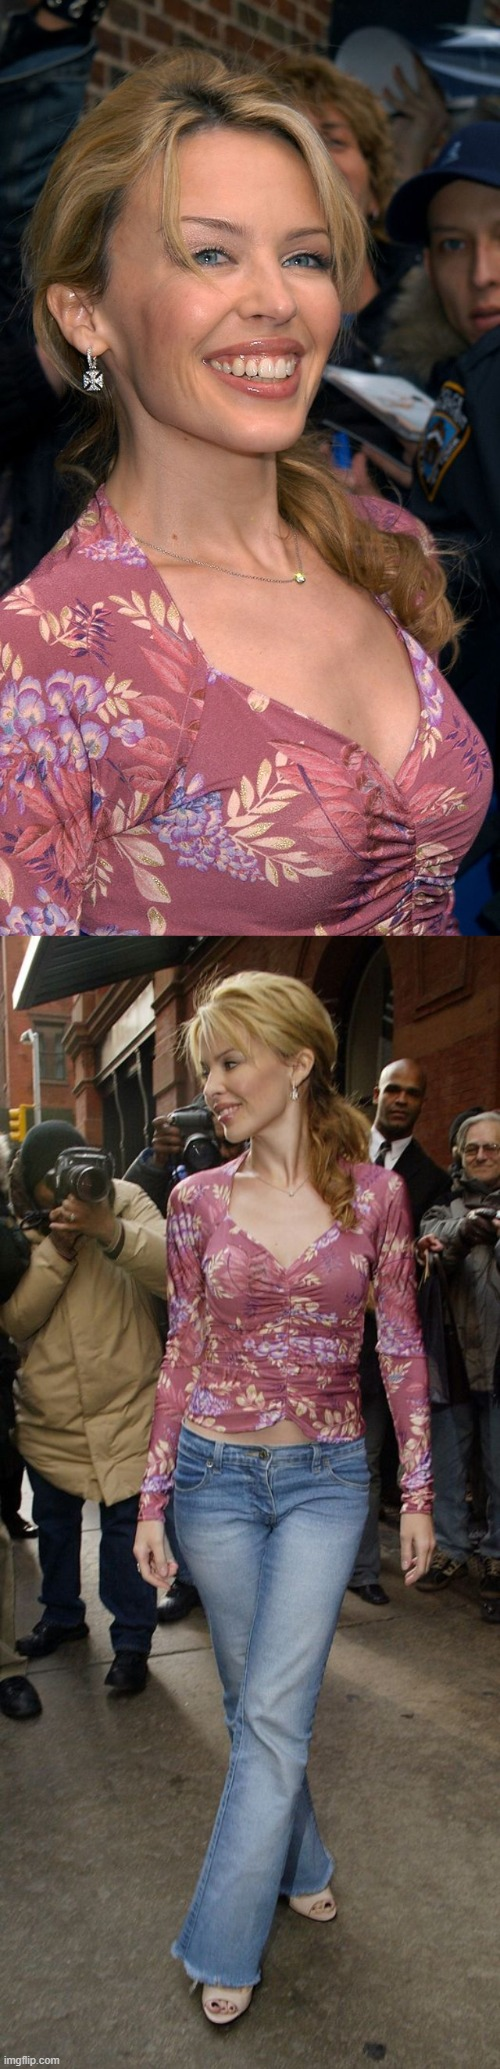 "After appearing at ""Late Night with David Letterman"", NY, 2004. 